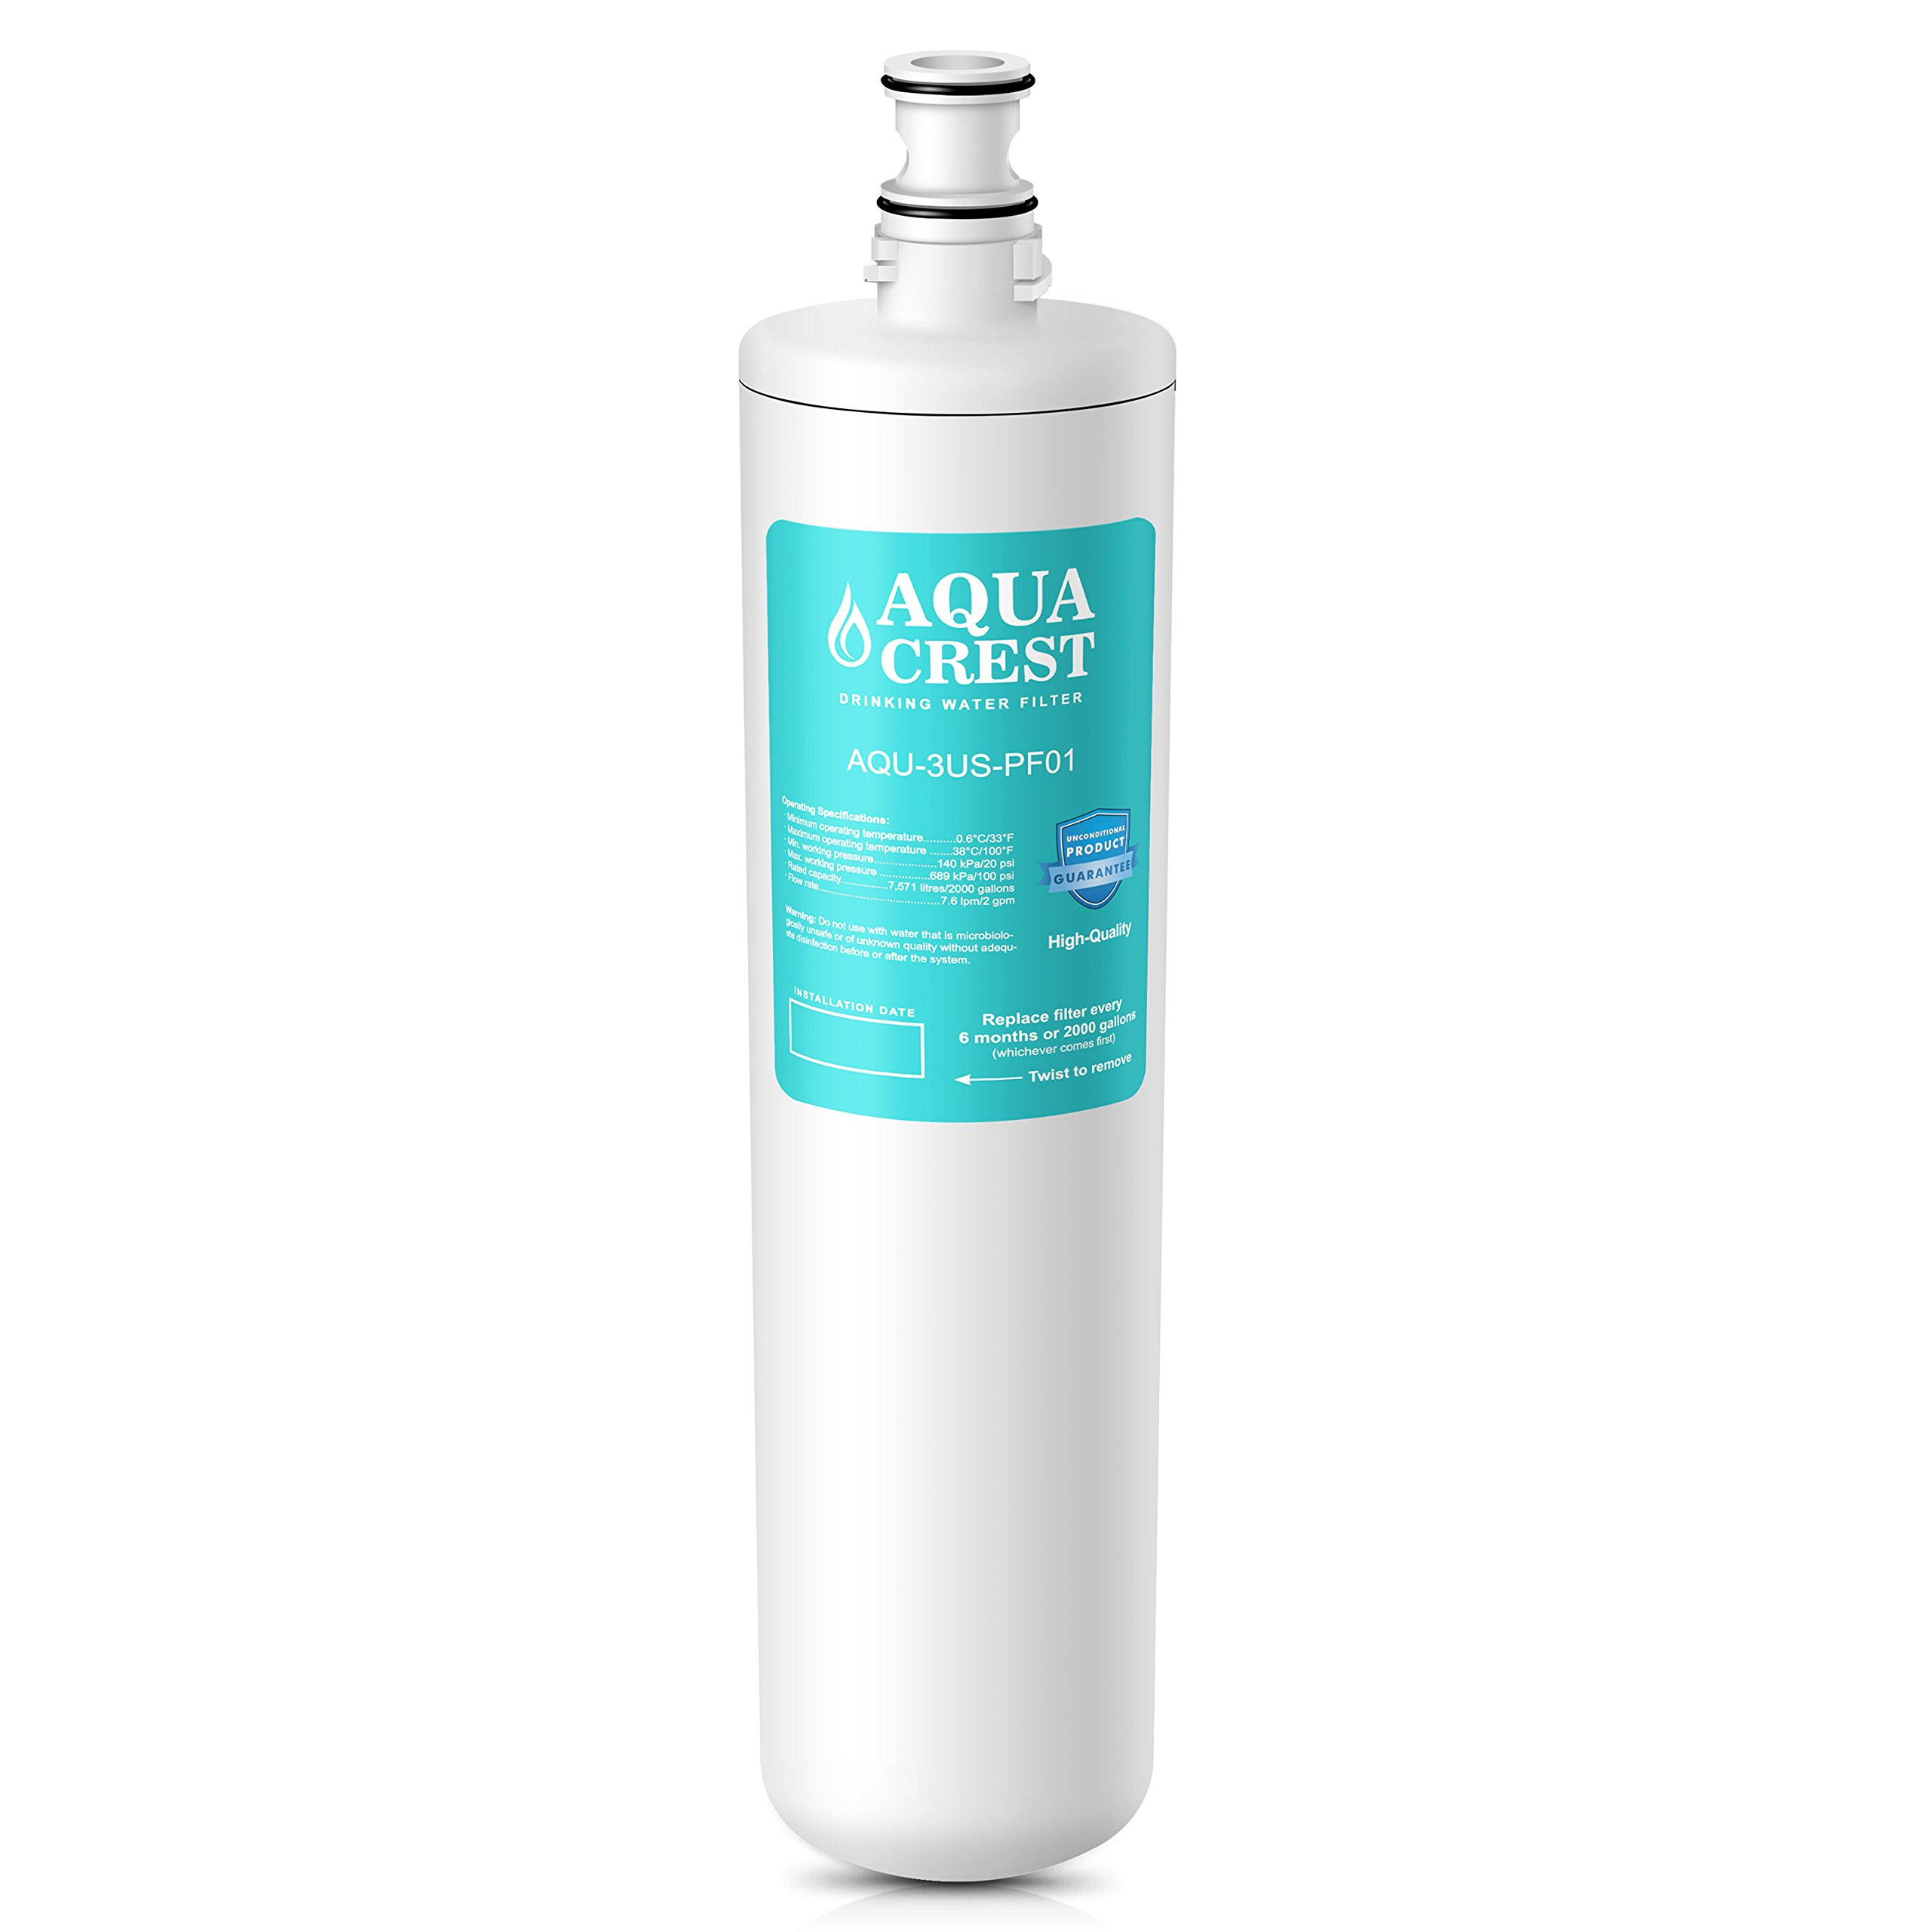 AQUACREST 3US-PF01 Replacement Under Sink Water Filter, Compatible with Filtrete Advanced 3US-PF01, 3US-MAX-F01H, 3US-PF01H, Delta RP78702, Manitowoc K-00337, K-00338 Water Filter by AQUA CREST